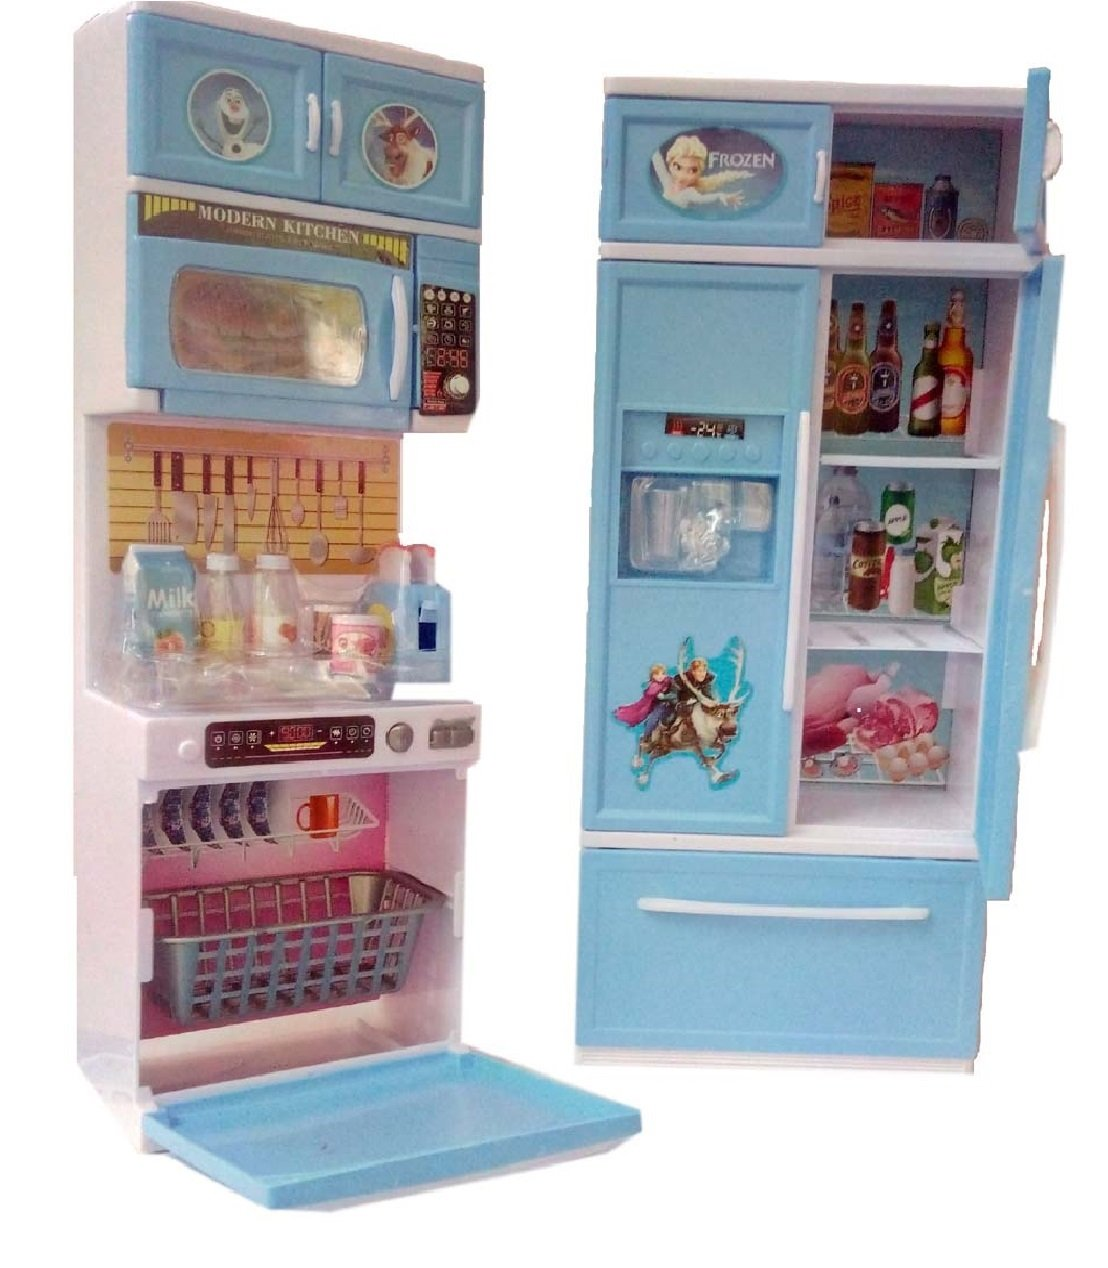 Buy HALO NATION Frozen Modern Kitchen Set with Elsa and Anna Dolls ...